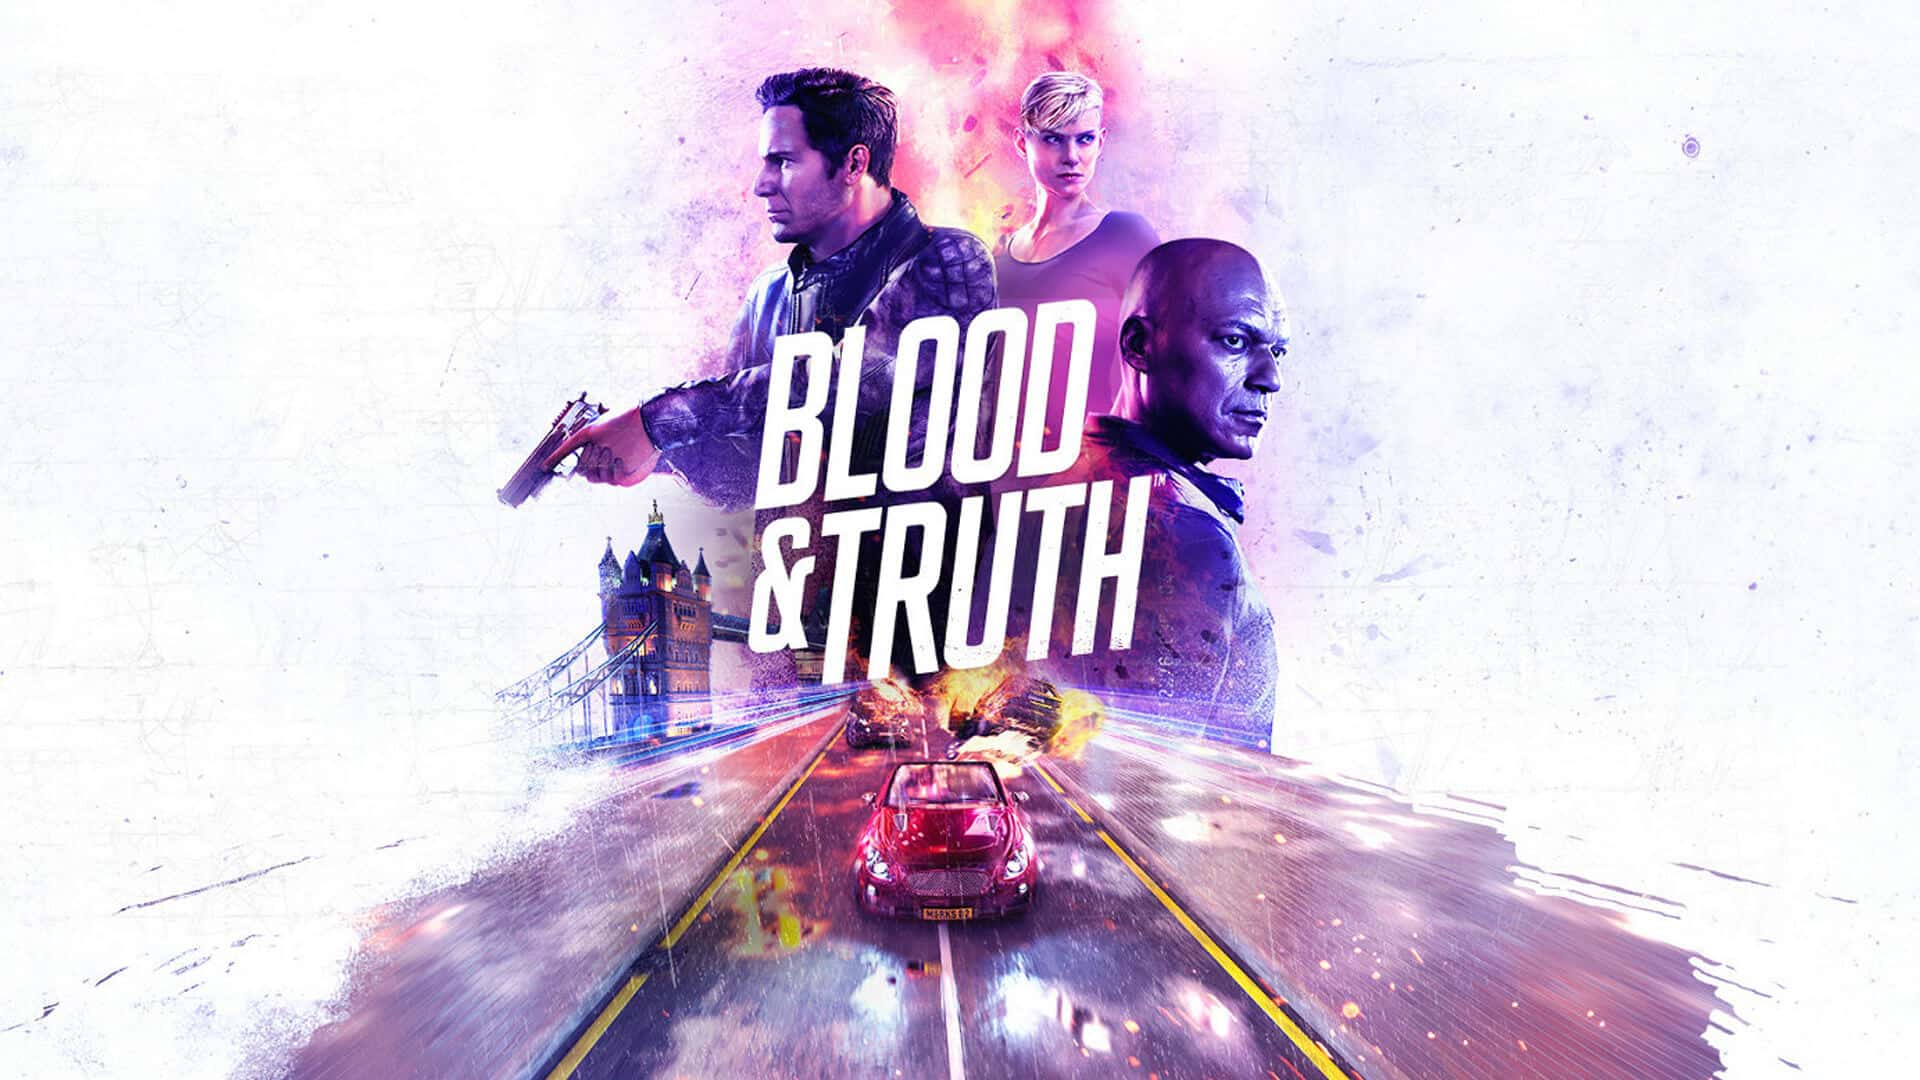 VIDEO: Blood & Truth Out Now For PlayStation VR